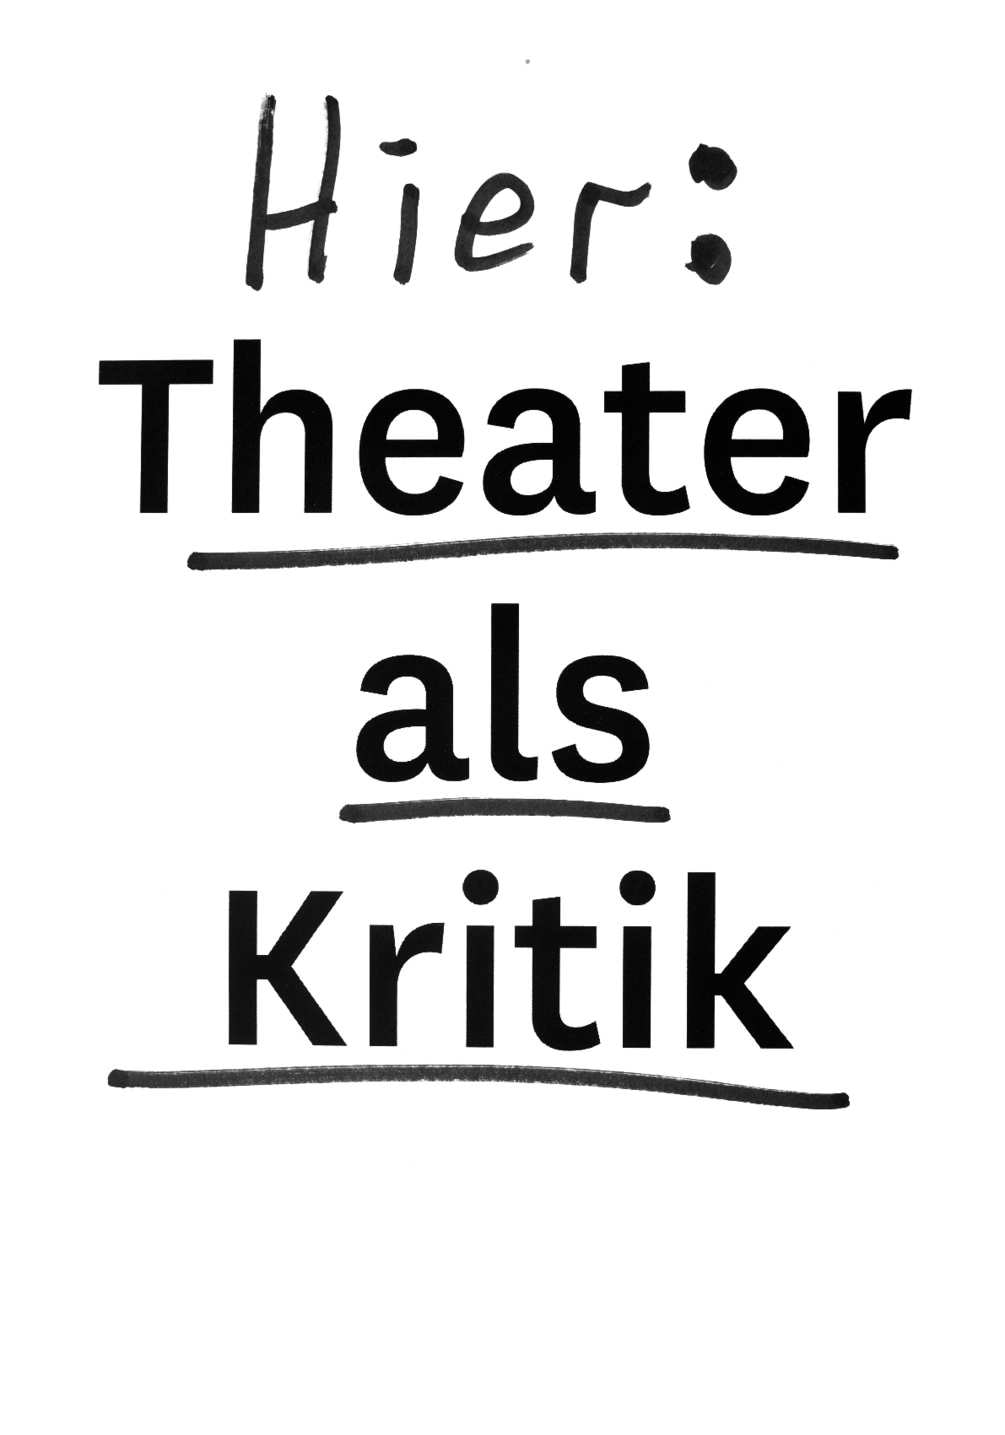 theater-as-critique-slip-07-1005x1435px